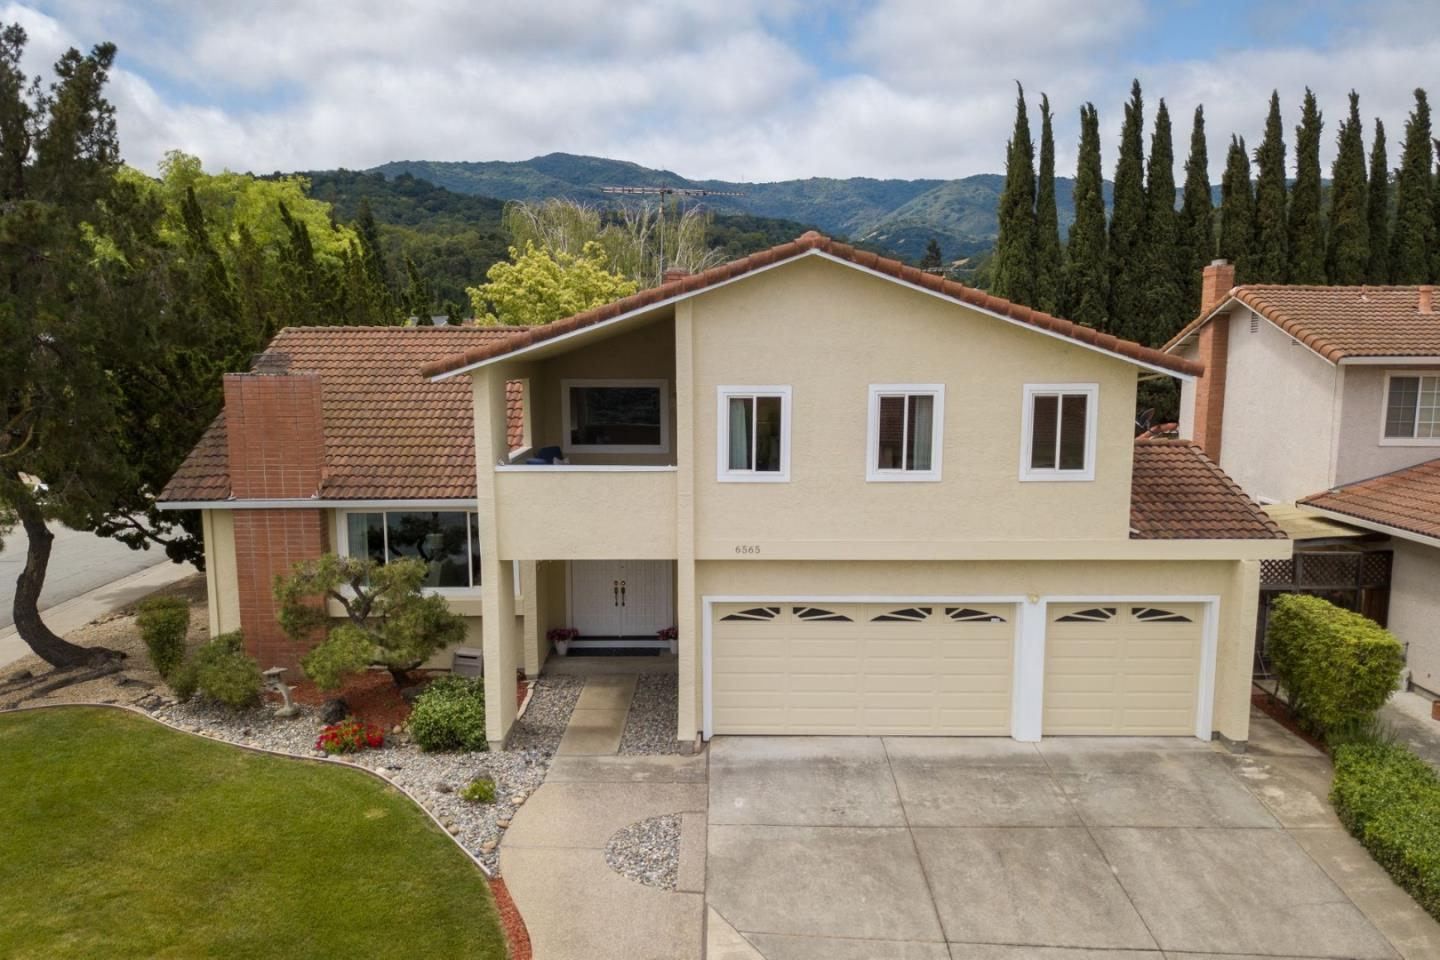 Property for sale at 6565 Edgebrook CT, San Jose,  California 95120